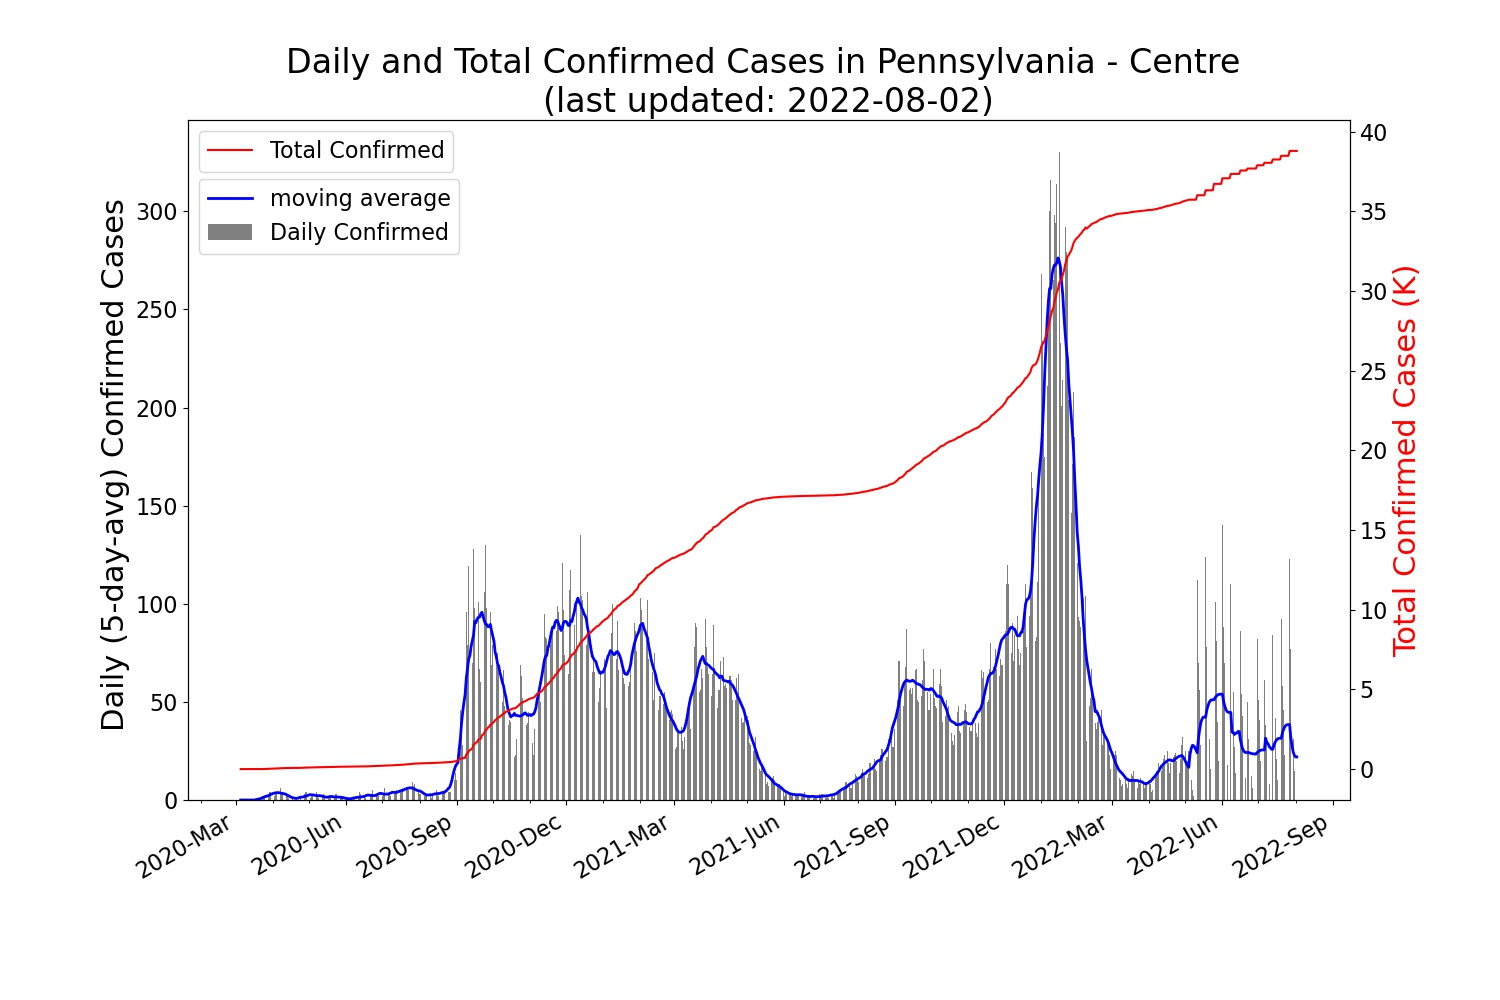 Trend of the daily/total confirmed COVID-19 cases in CENTRE County (PA)